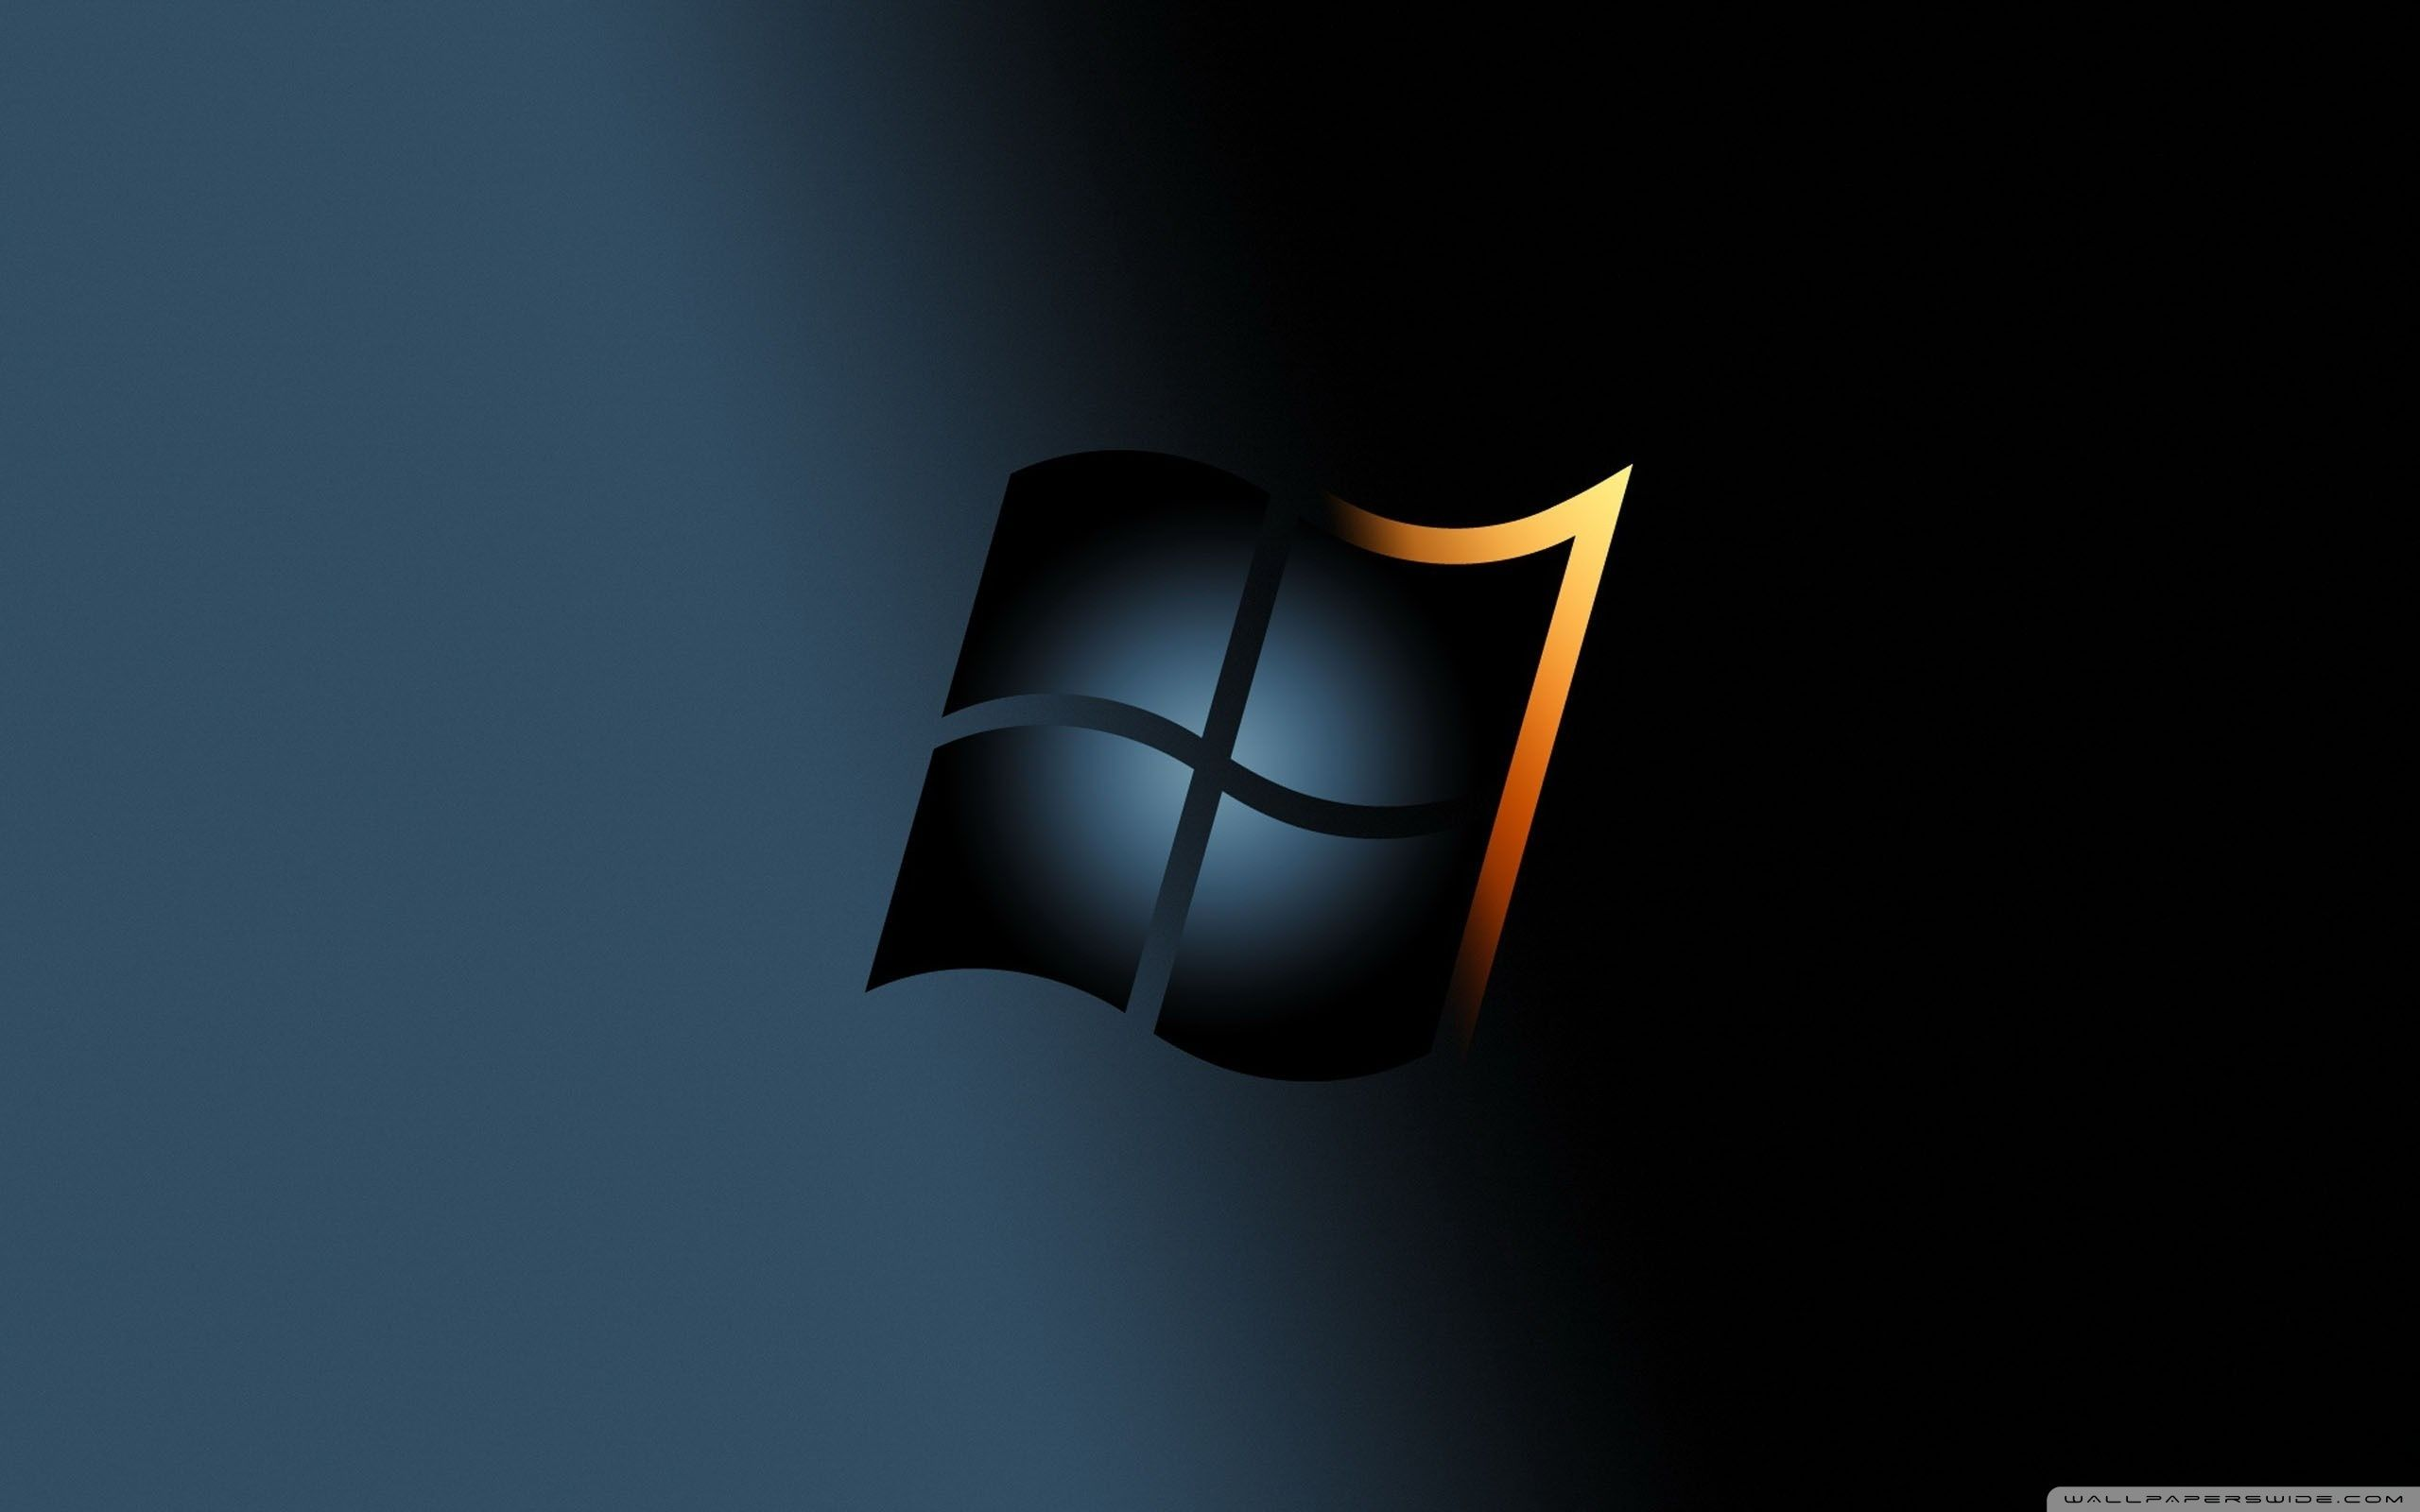 Windows 7 Dark Hd Desktop Wallpaper High Definition Fullscreen Pantalla De Pc Fondo De Pantalla Oscuros Fondos De Pantalla Escritorio